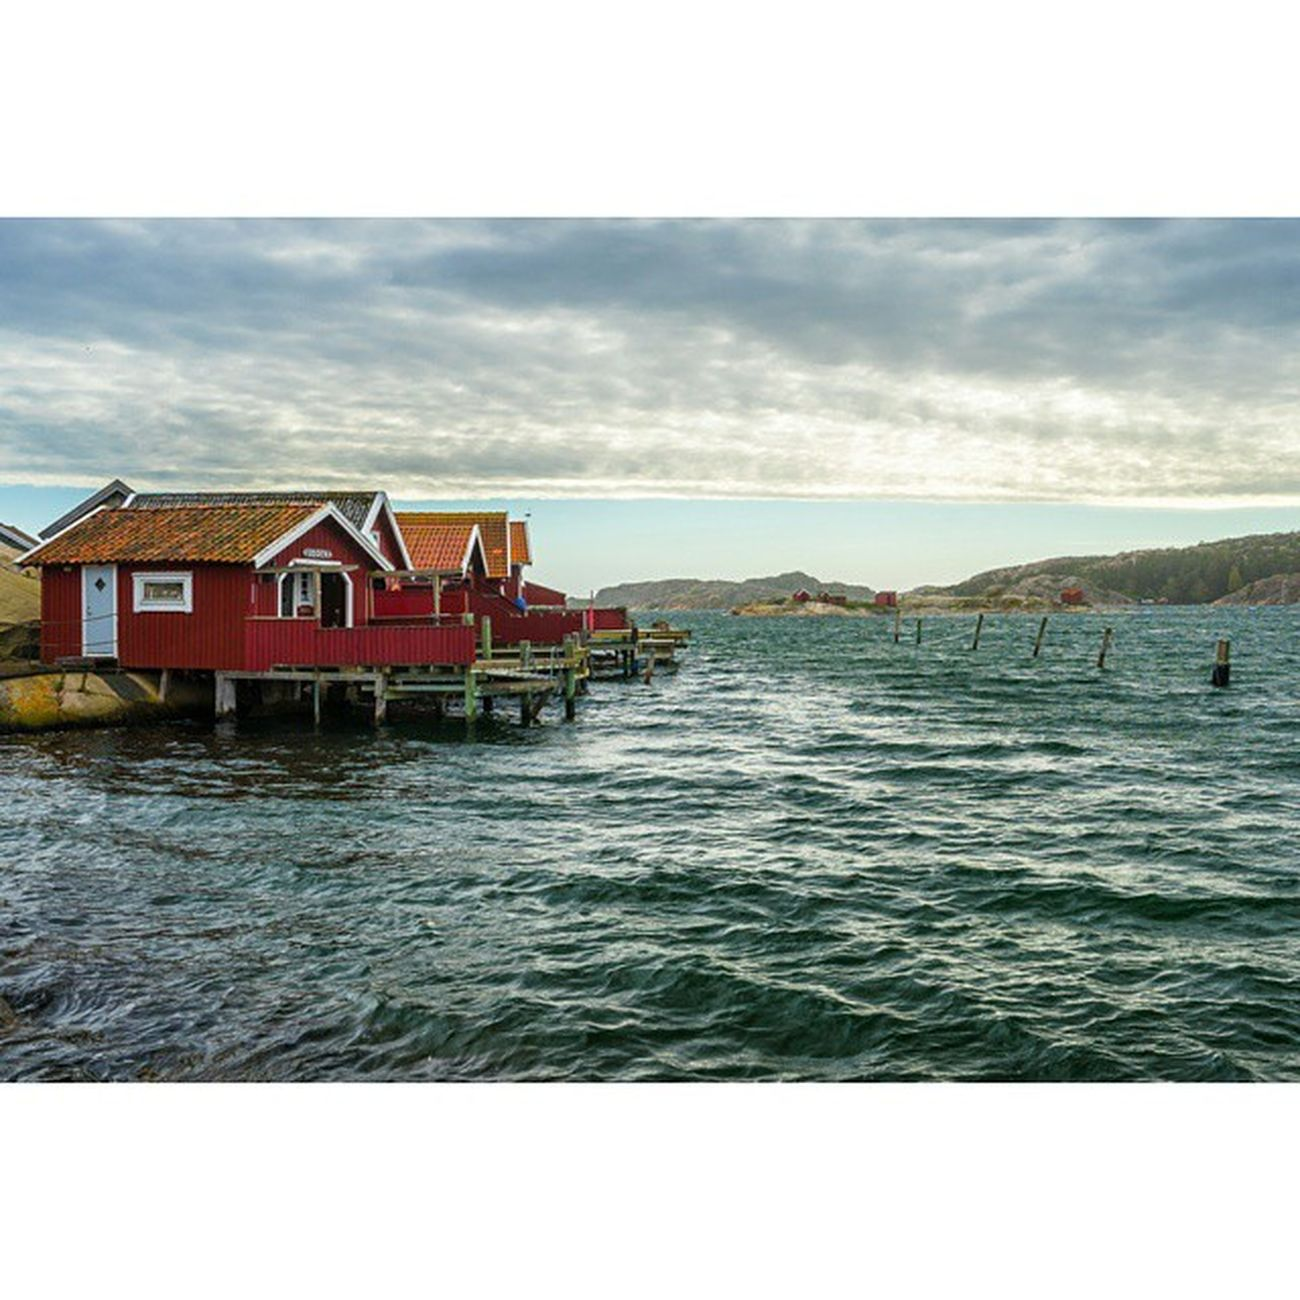 Huts Water Fjallbacka Sweden Sea Scandanavia Bohuslän Red Rsa_water Rsa_water_harbour